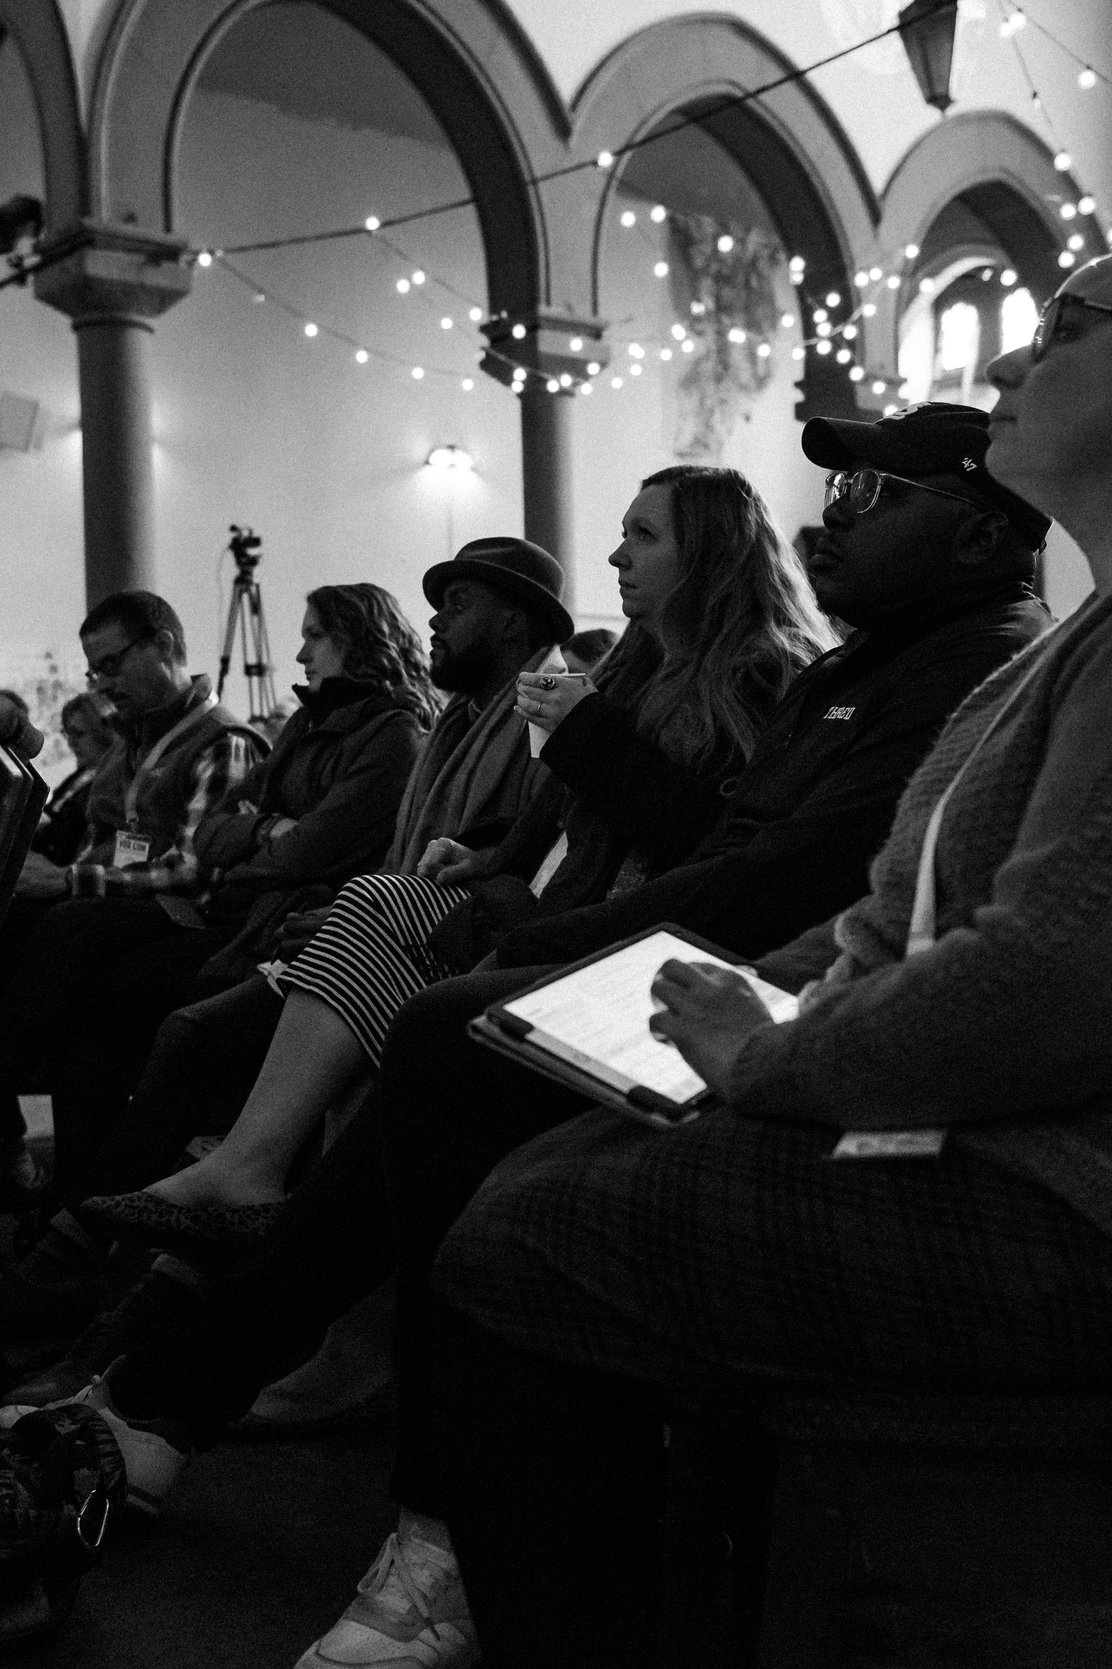 INSTRUCTION - Through Main Stage presentations, Micro Sessions, and in Workshops you'll be equipped with practical insights and applicable skills for growing in your creativity, communication, and adding to the common good. We promise.